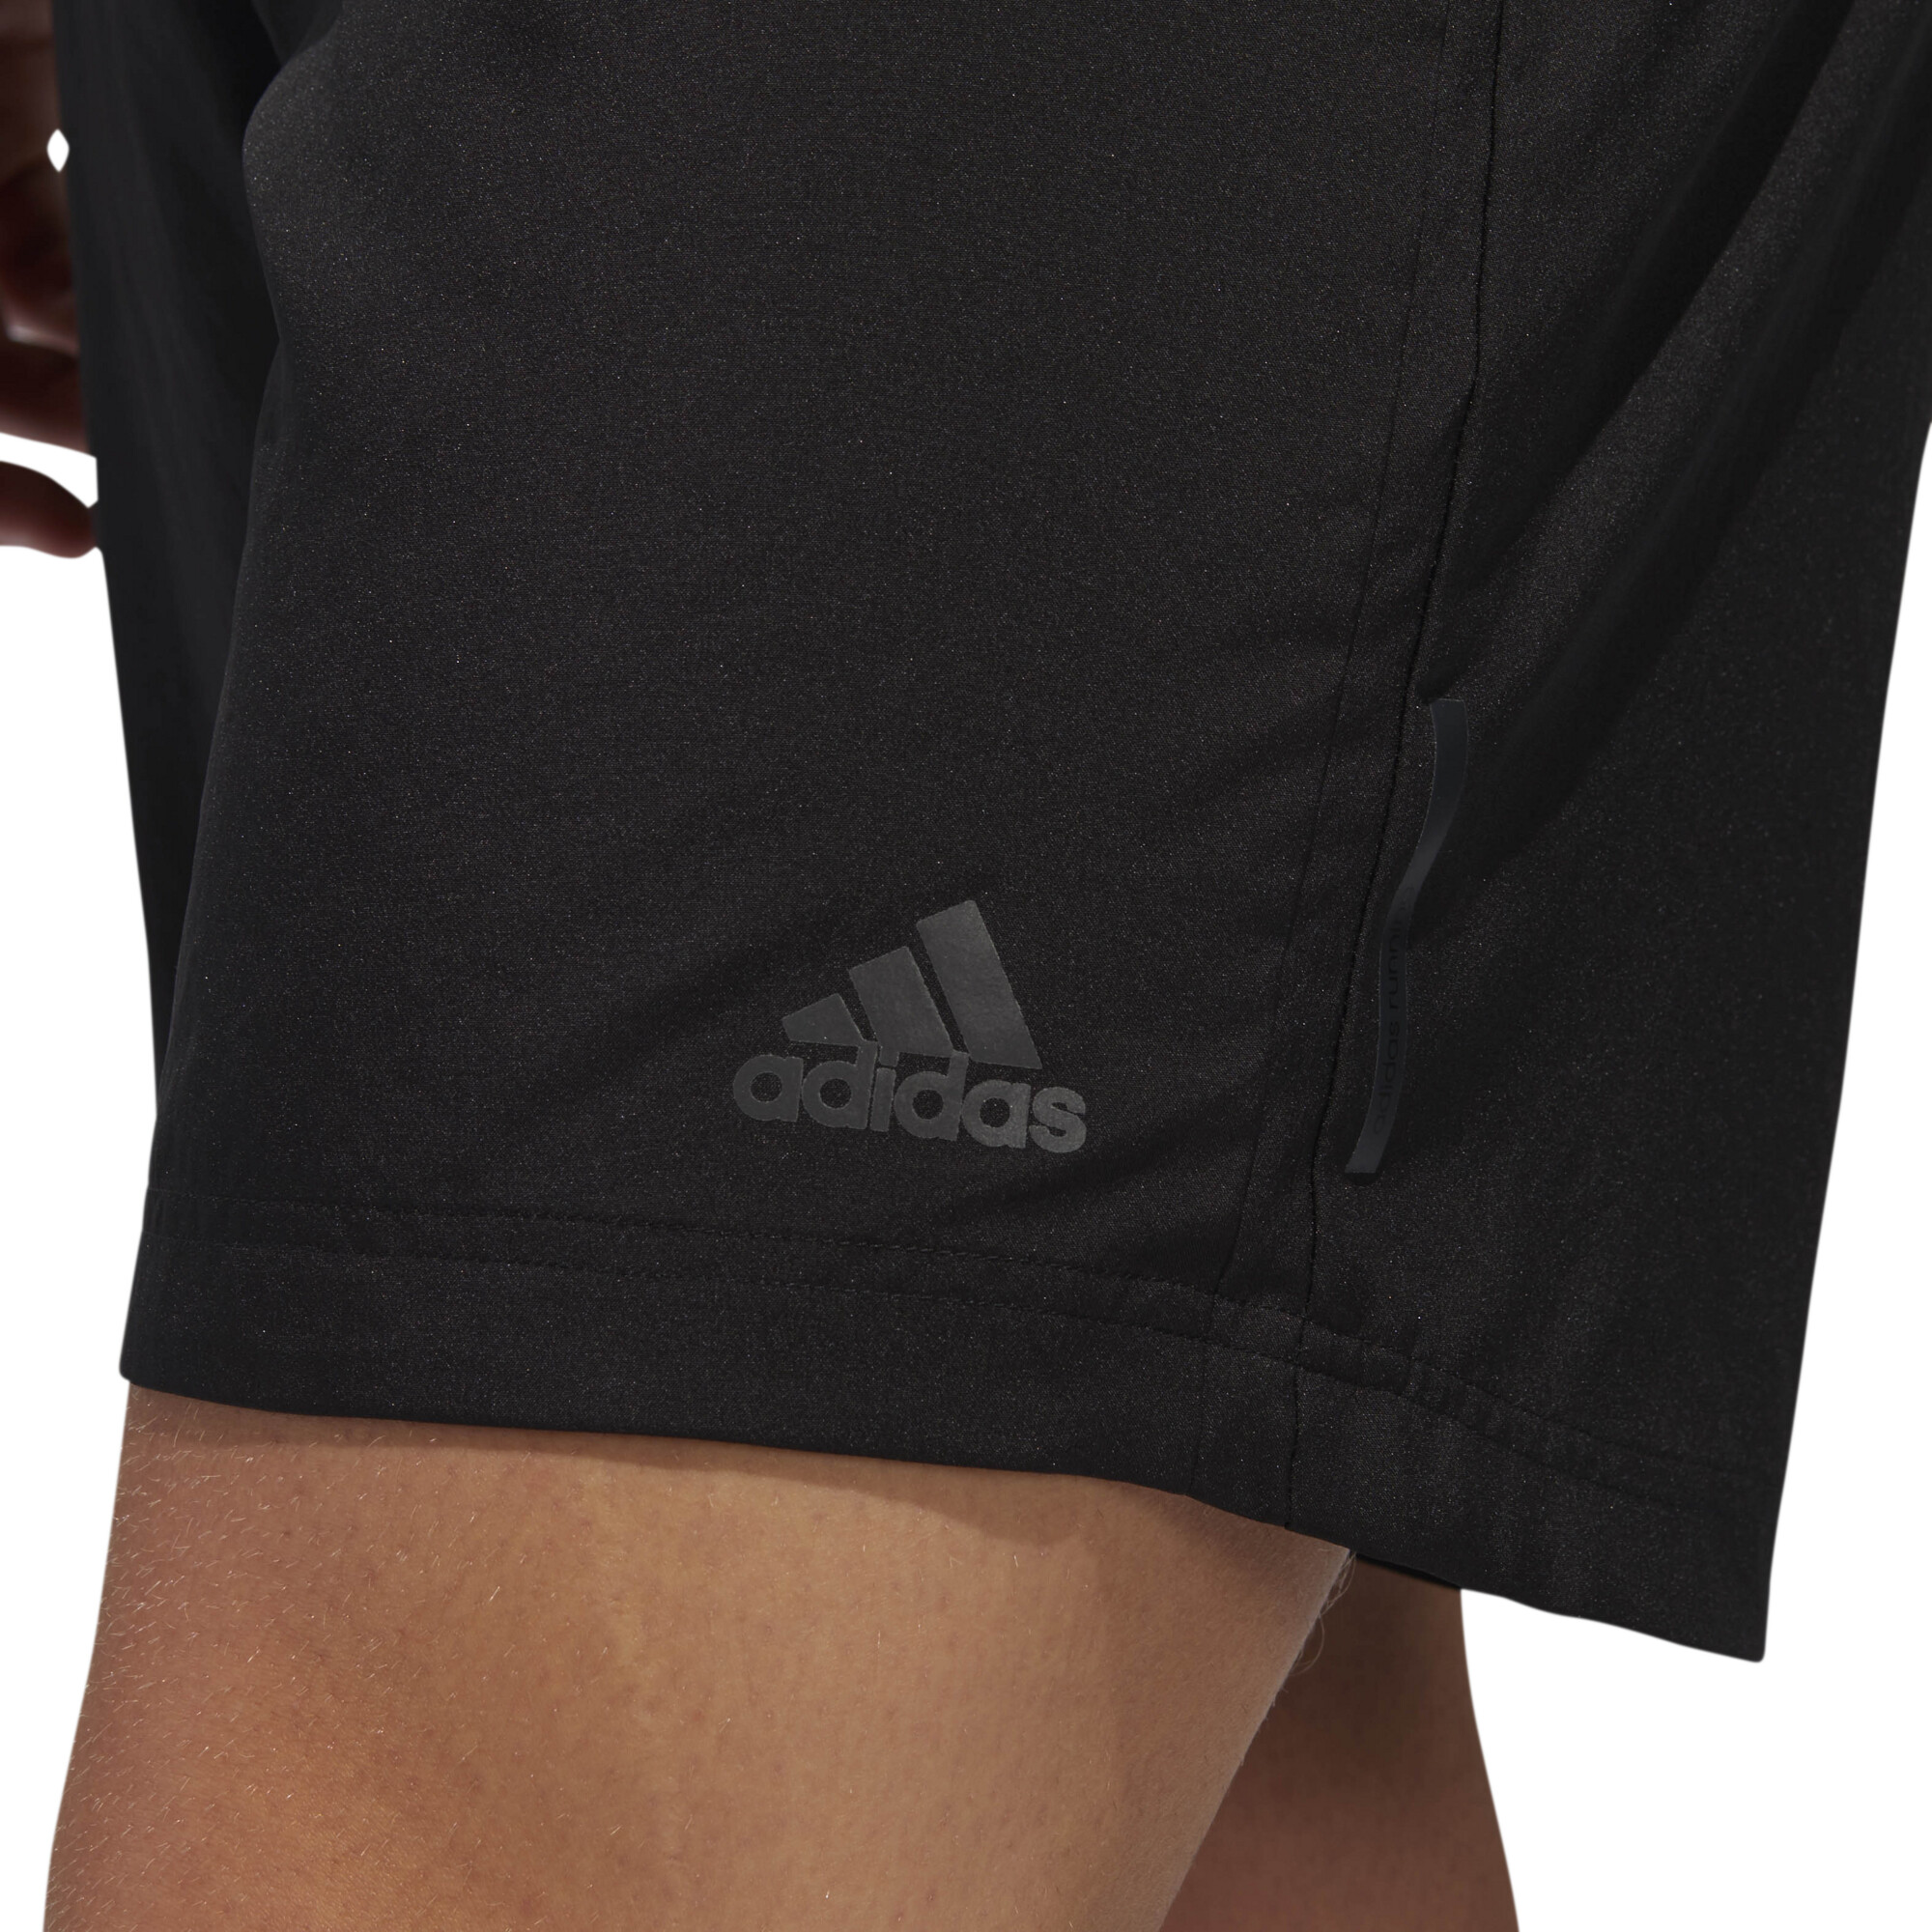 15ac8aad4ed adidas Run It 7 Hardloop Shorts Heren zwart I Online op bikester.be